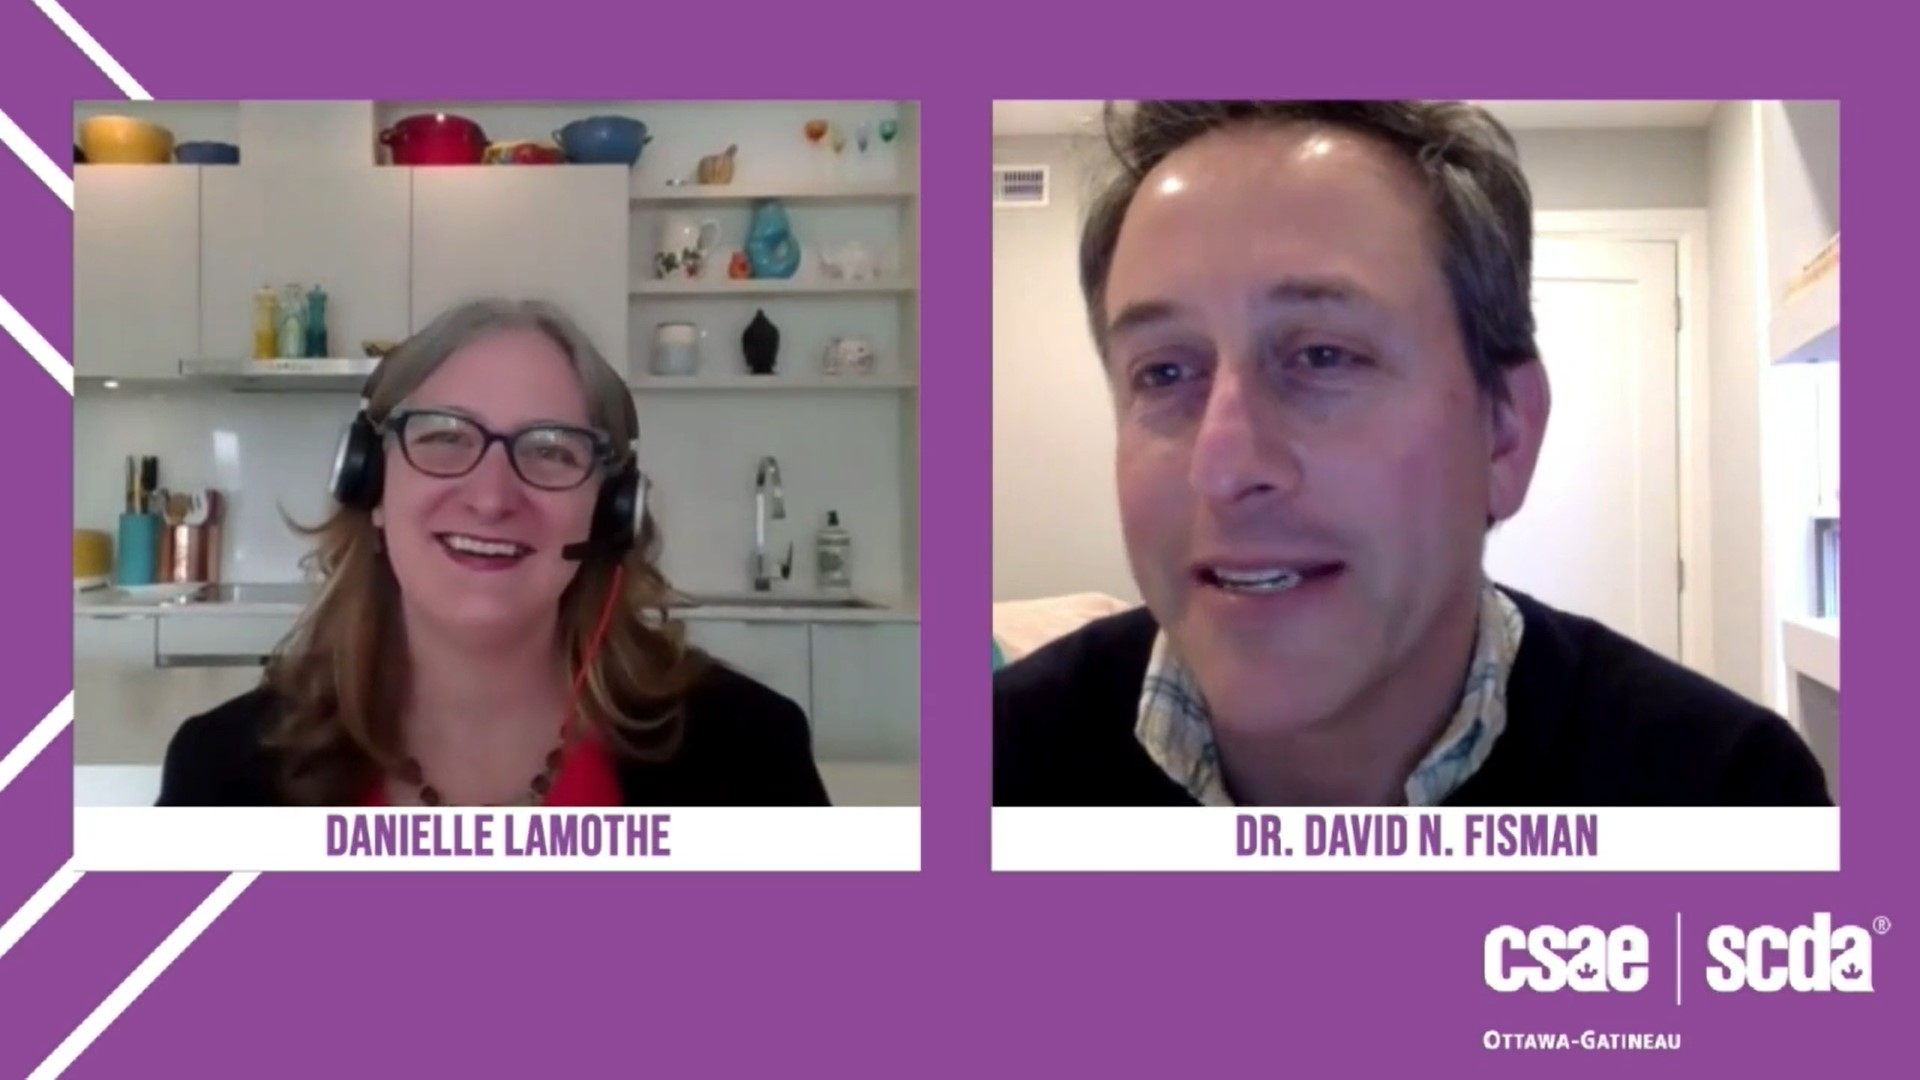 The Latest COVID-19 Insights From Dr. David N. Fisman